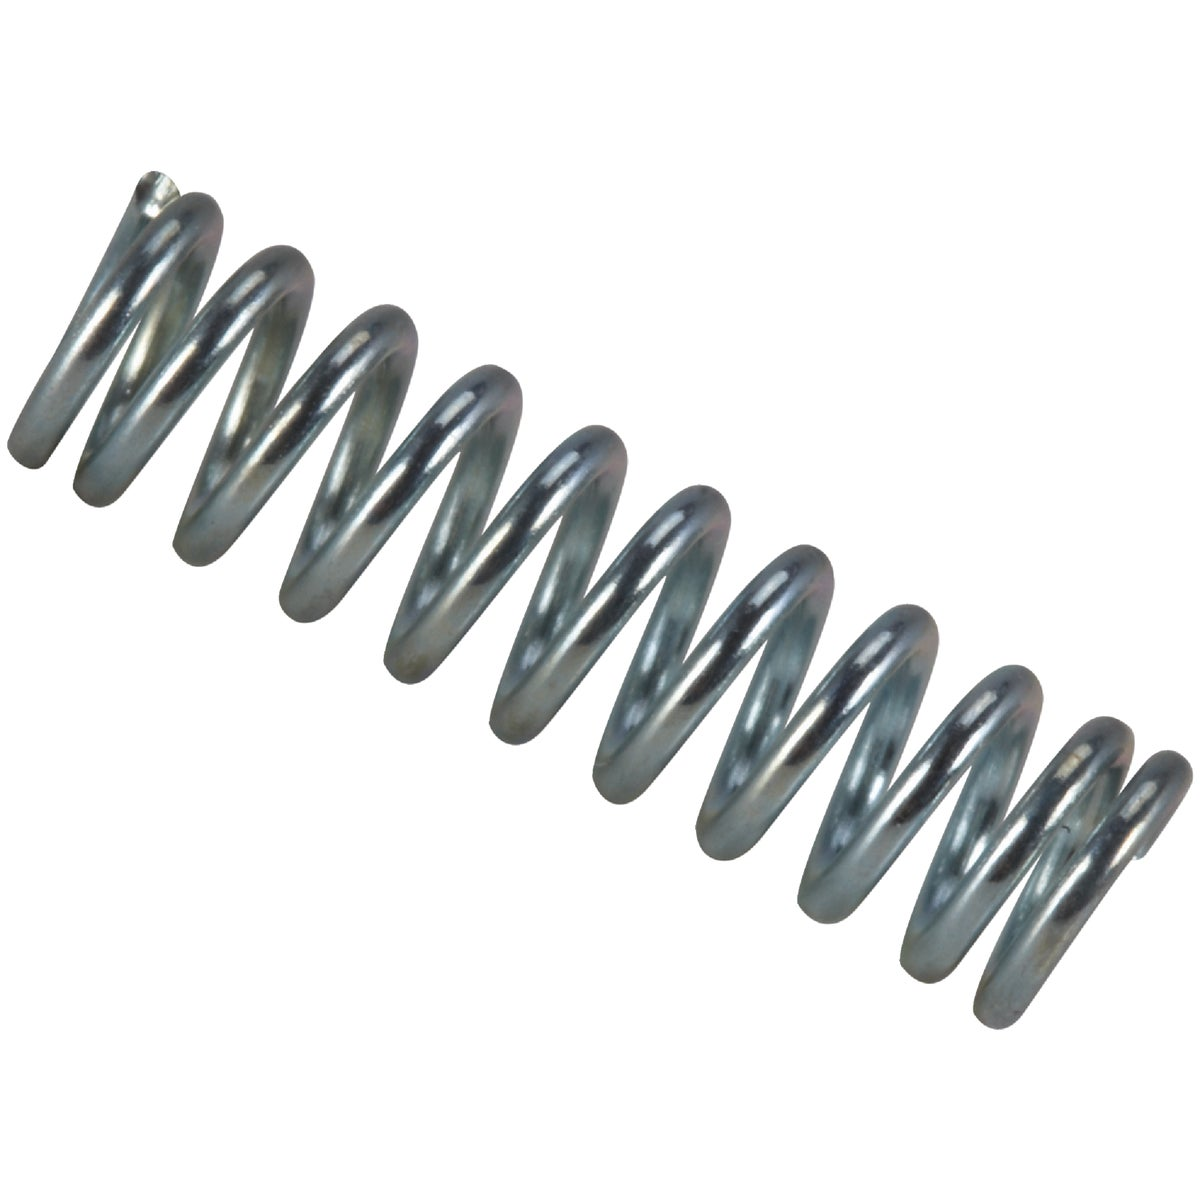 COMPRESSION SPRING - C-704 by Century Spring Corp